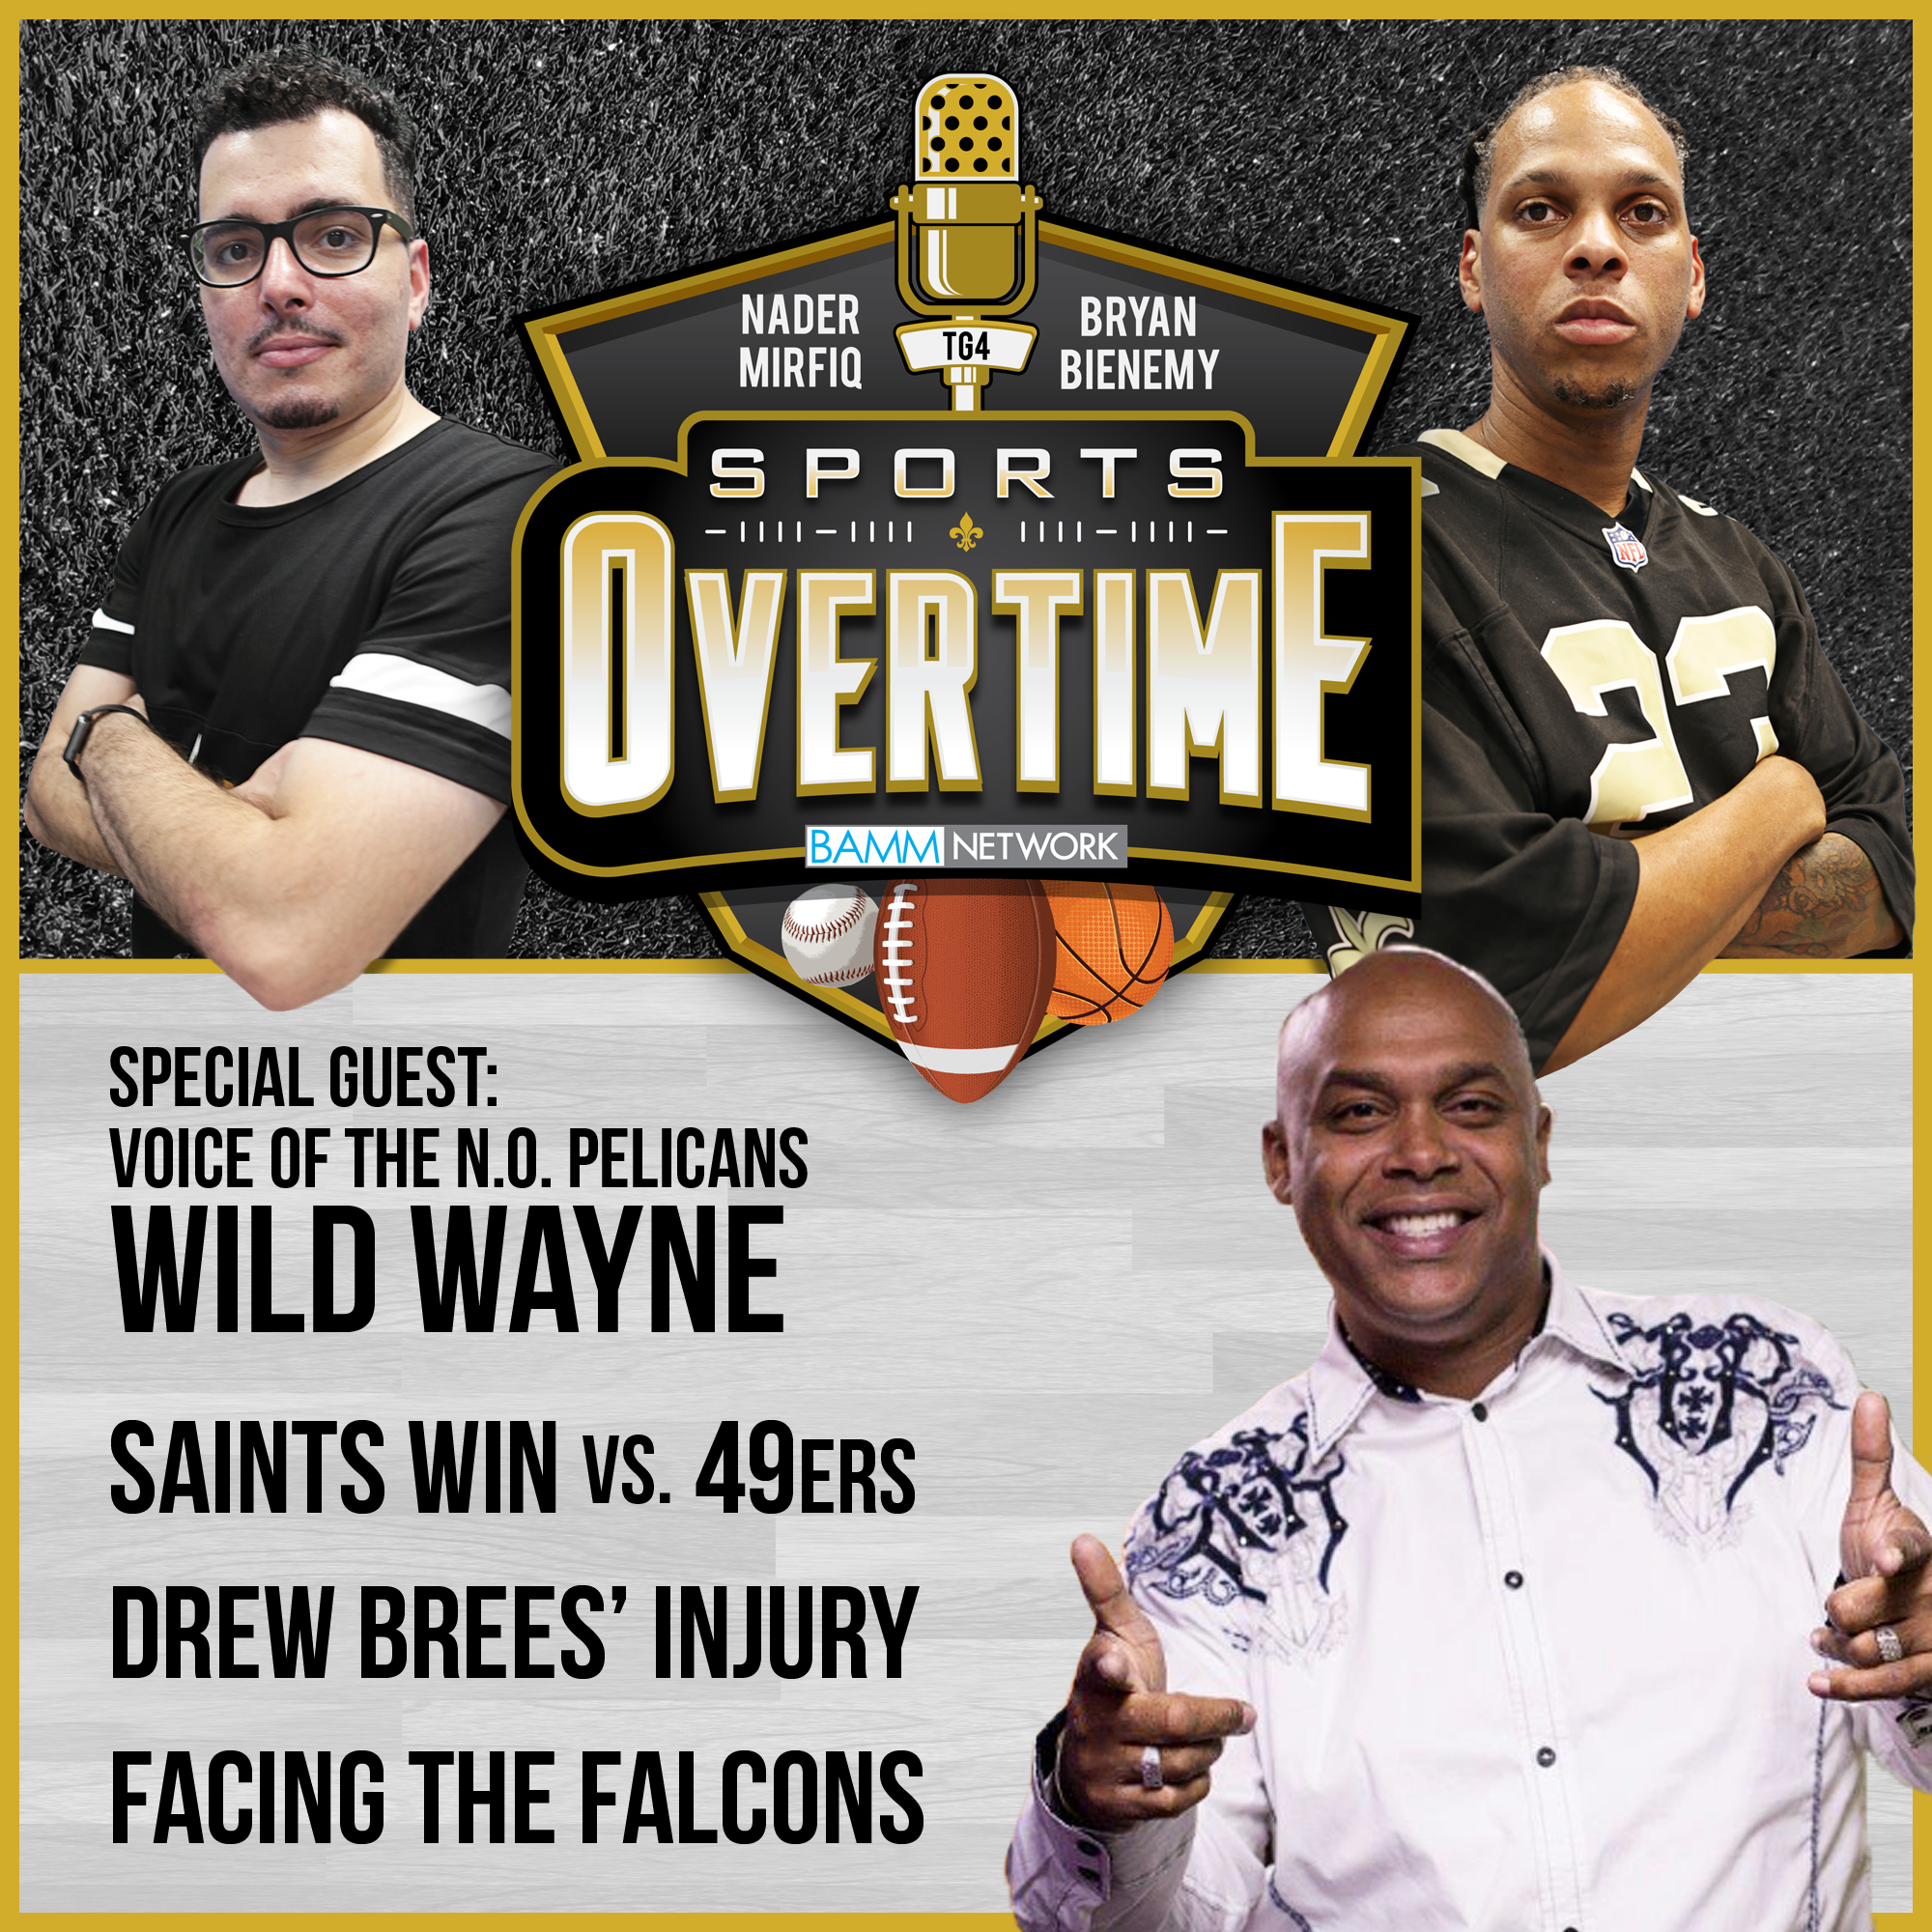 SportsOvertime_Soundcloud_2000x2000_S2E2_WildWayne.png (4.02 MB)